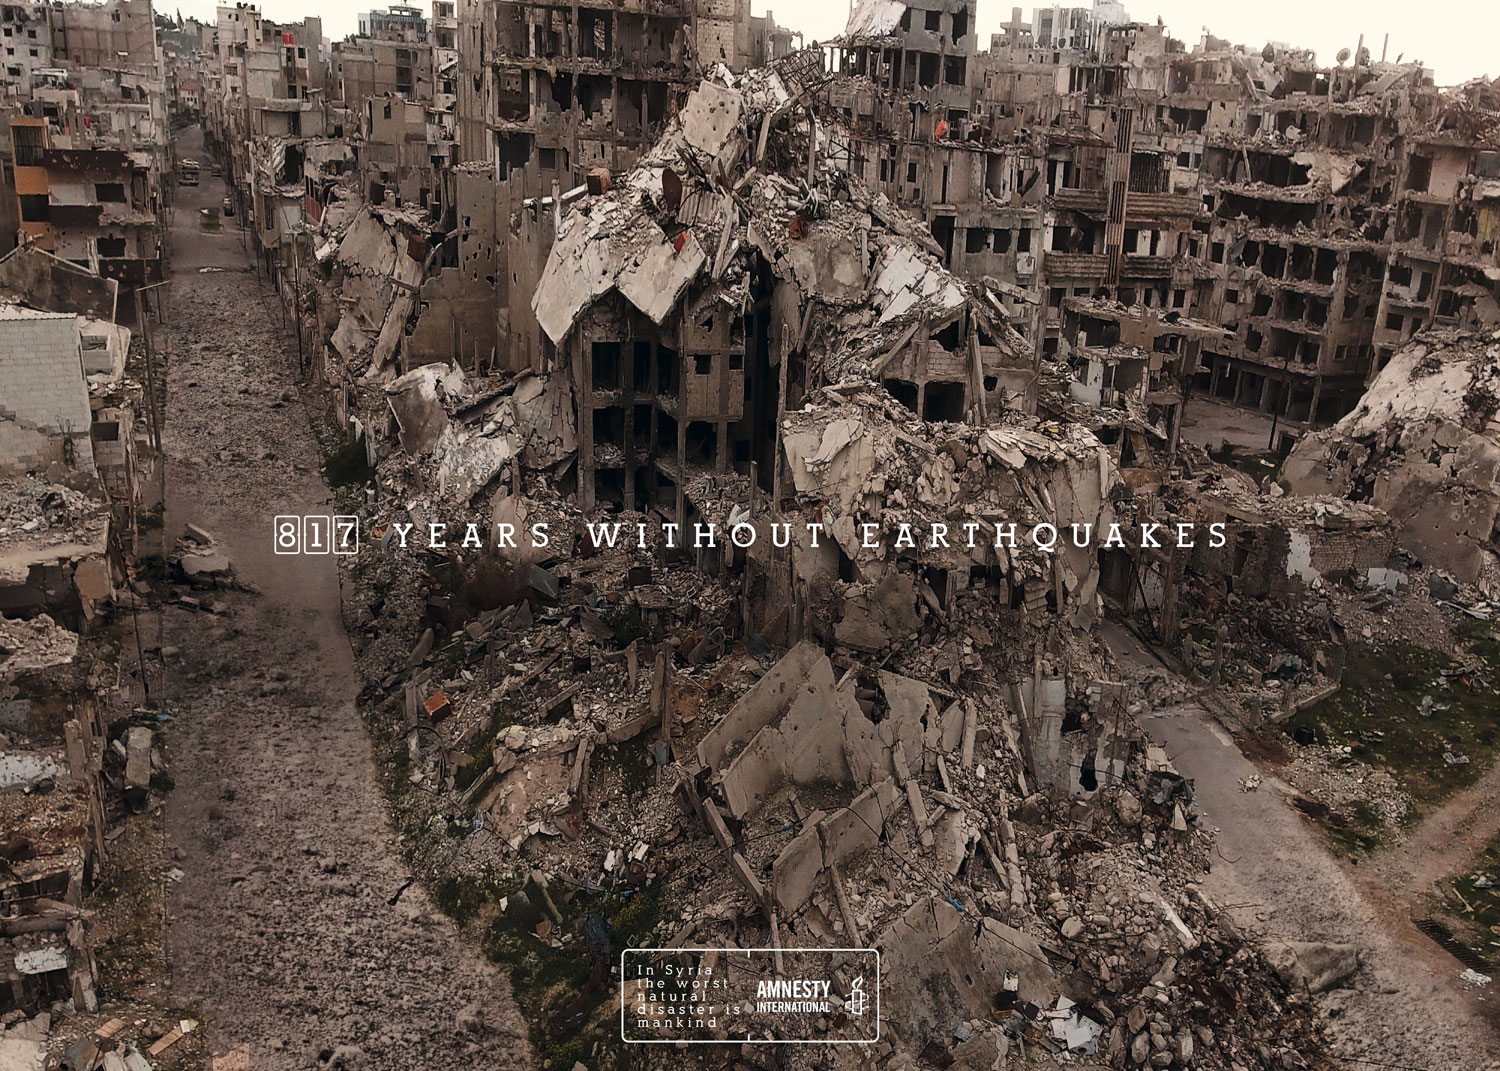 Natural disasters in Syria